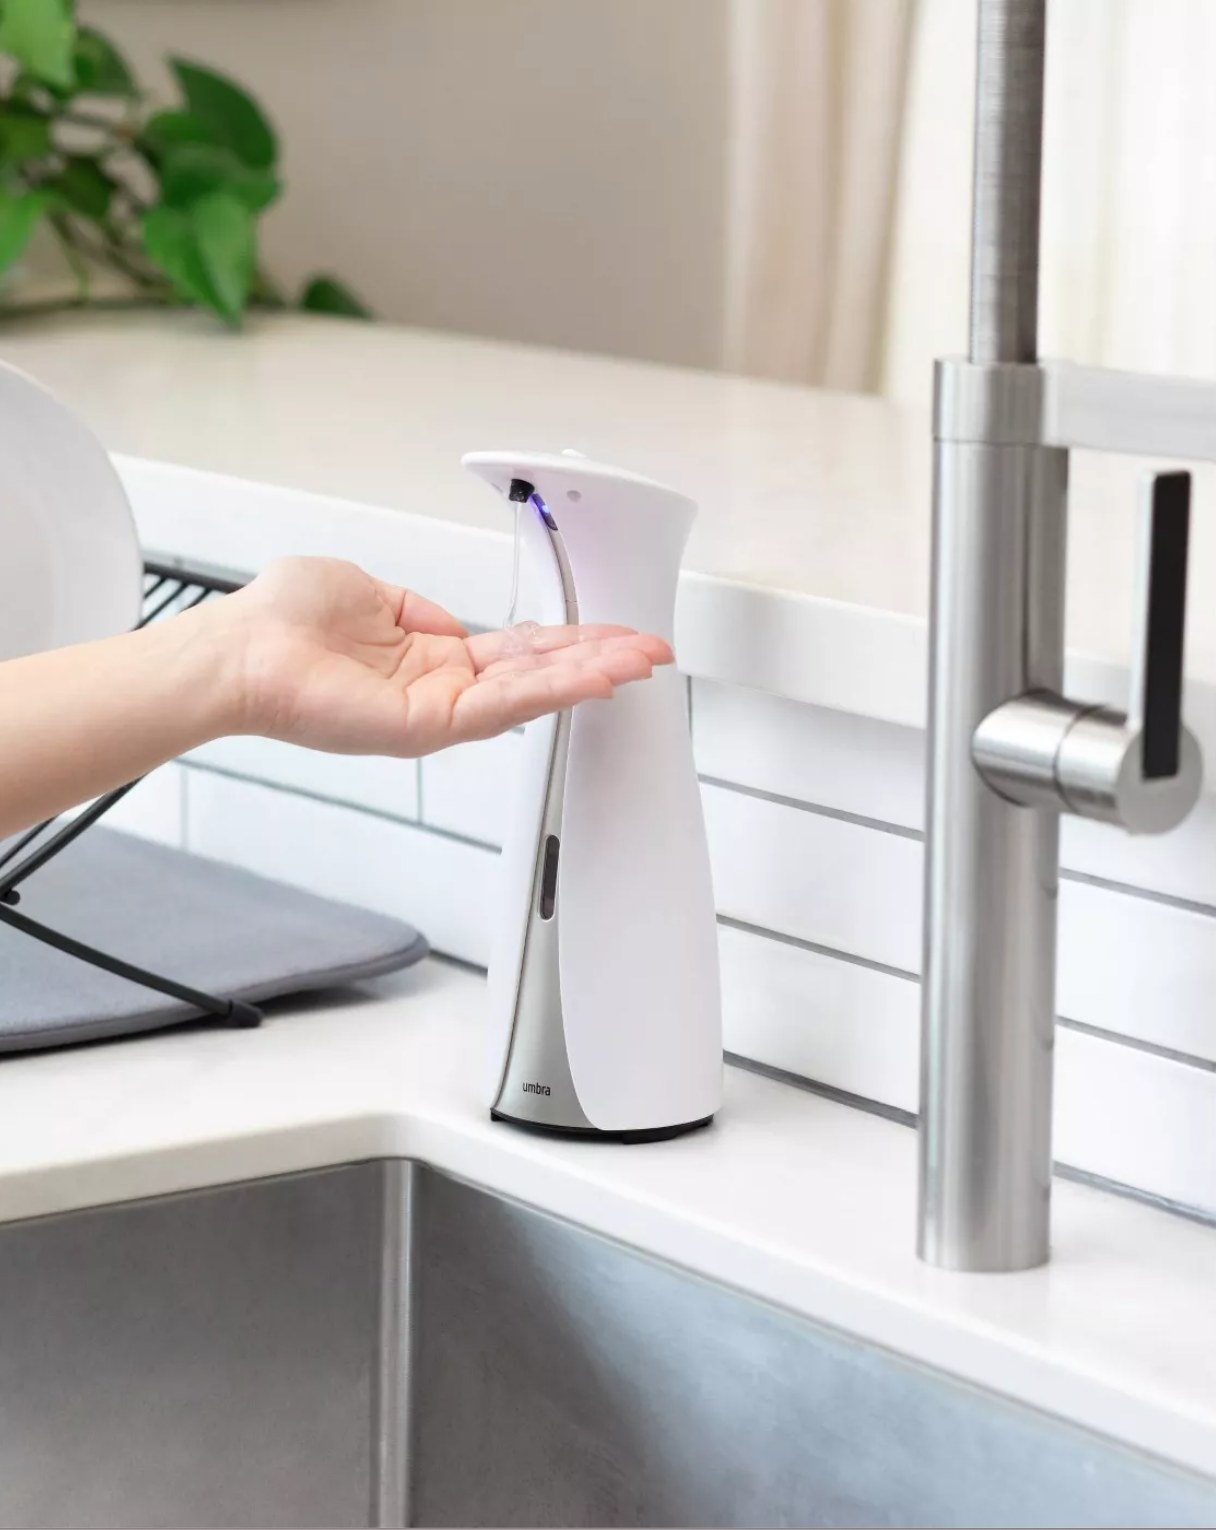 The soap dispenser releasing soap onto a hand